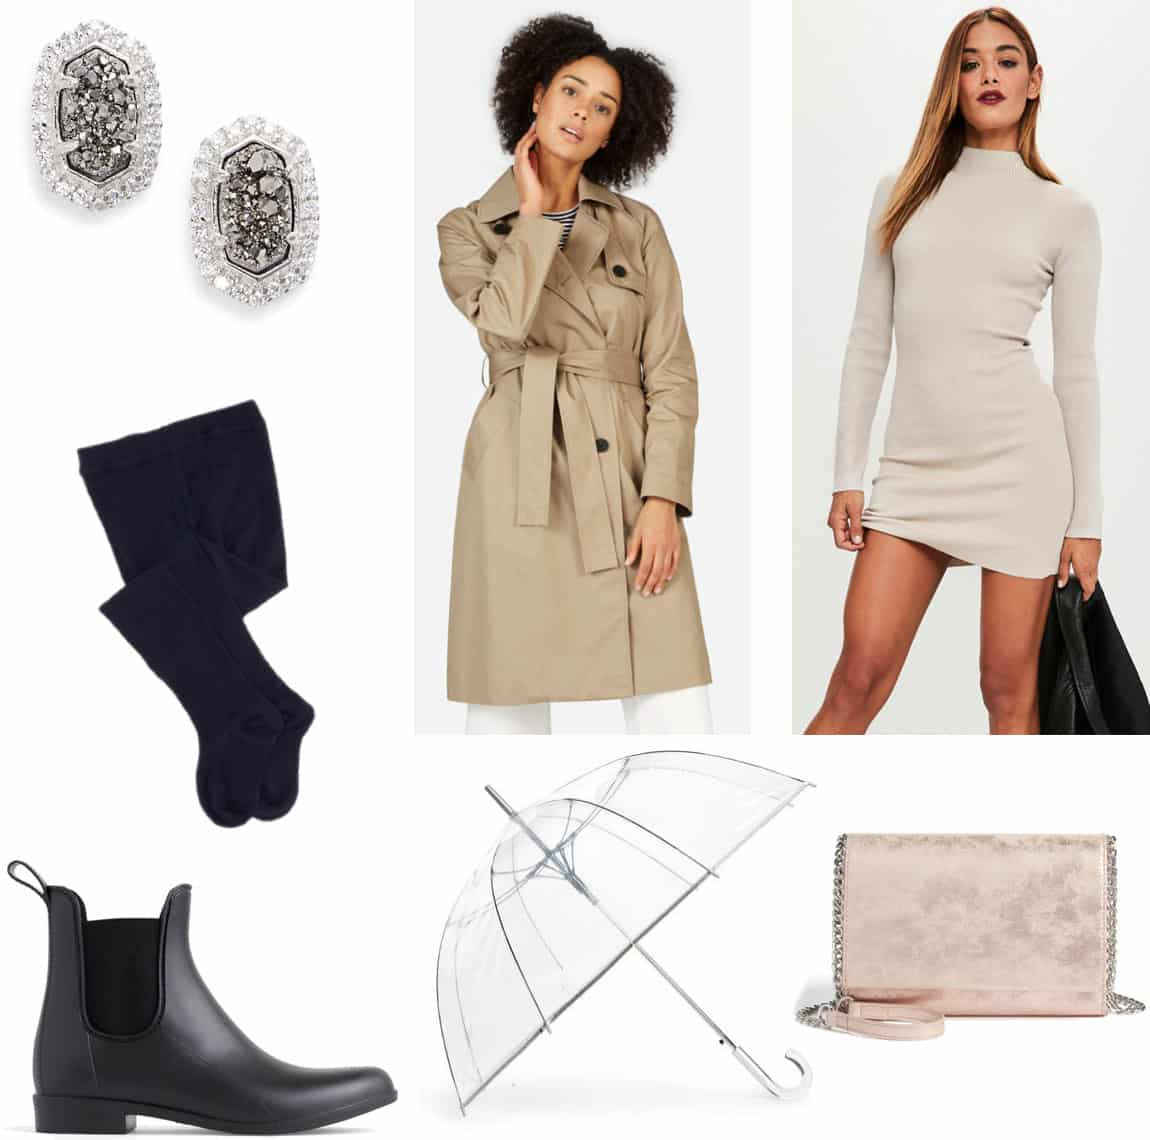 Winter rainy day outfit with sweater dress, black tights, tan trench coat, black rain boots, clutch bag with chain strap, stud earrings